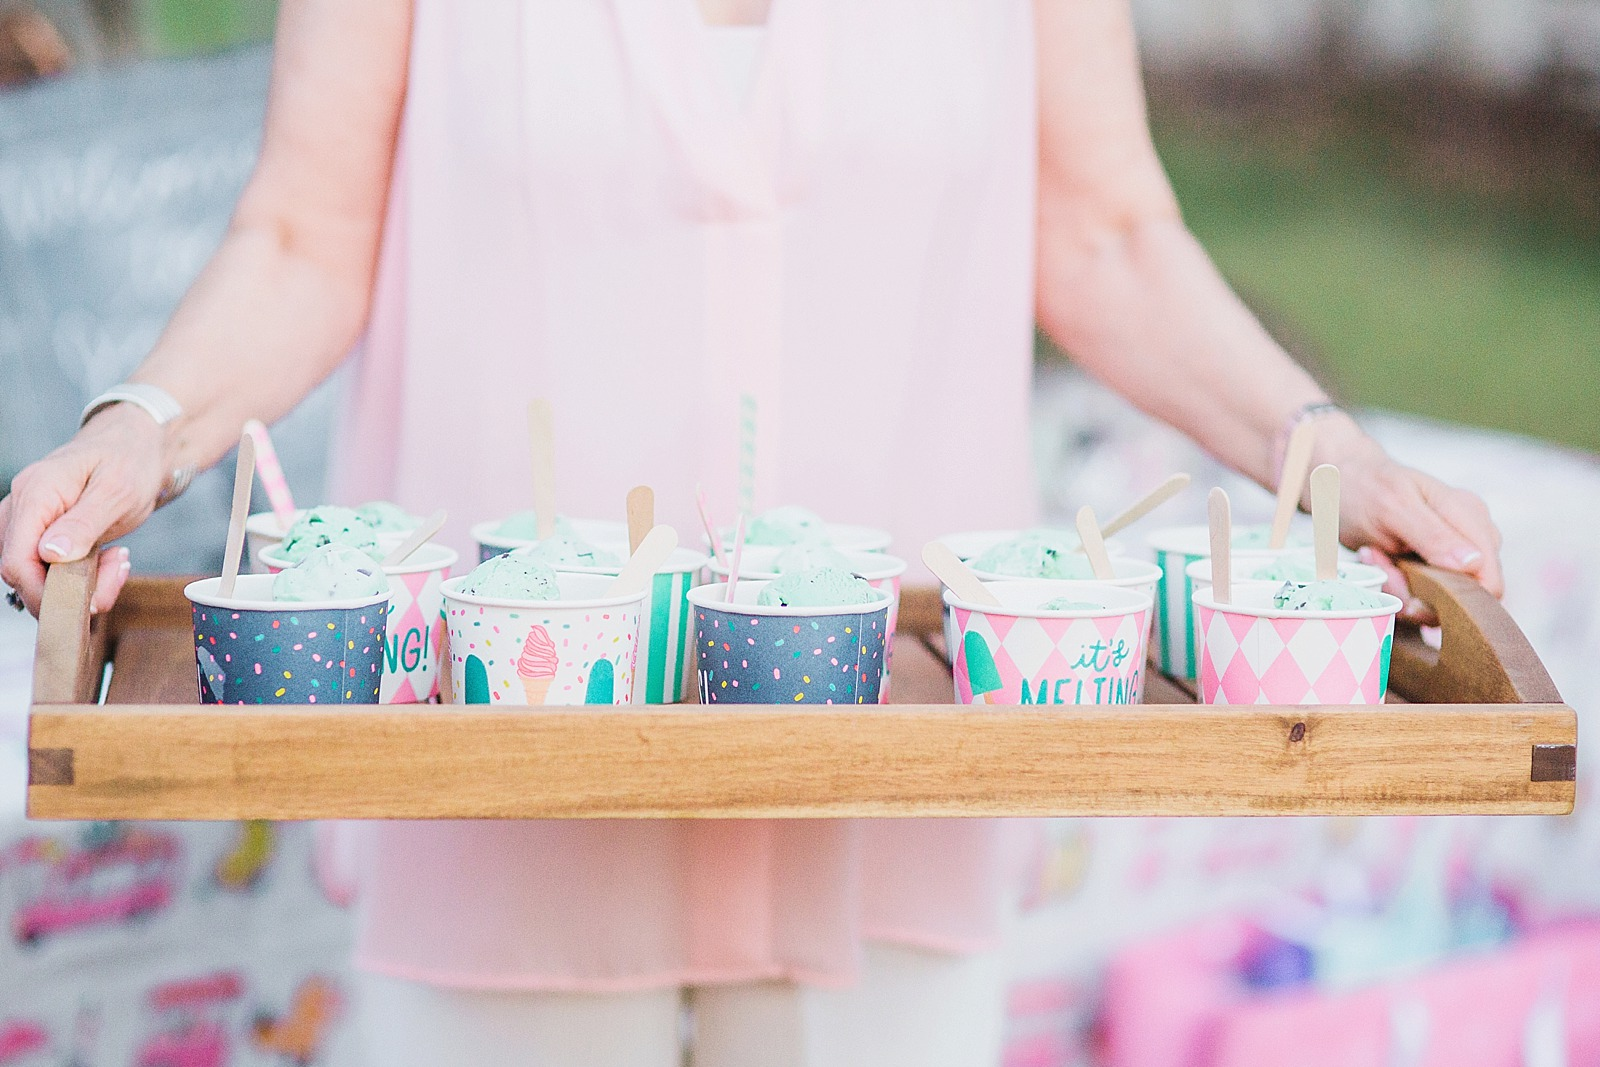 7 Top Tips For Throwing A Grand Party In A Small Home: Ice Cream Sprinkle At Dusk